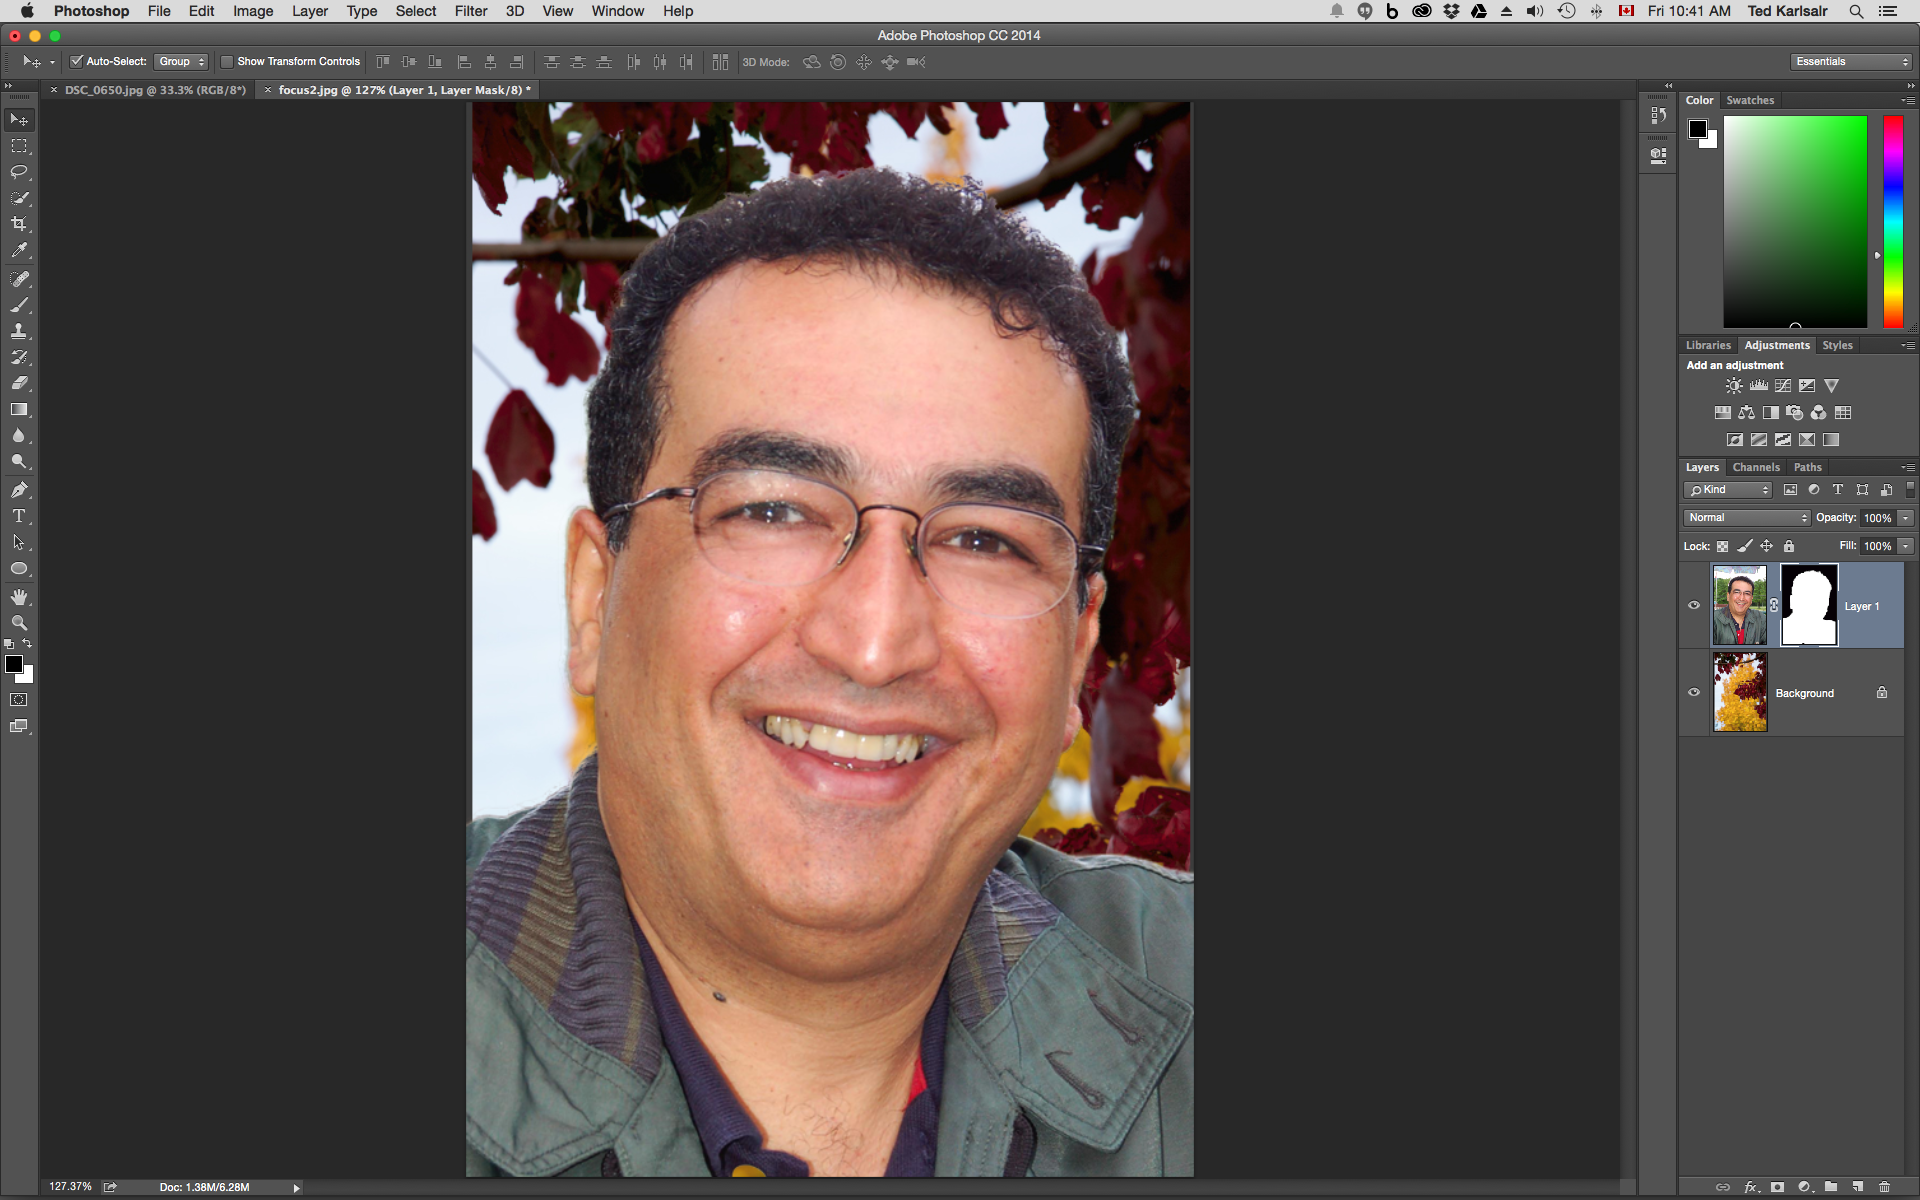 Layers and Masks in Photoshop help us editing photos nondestructively